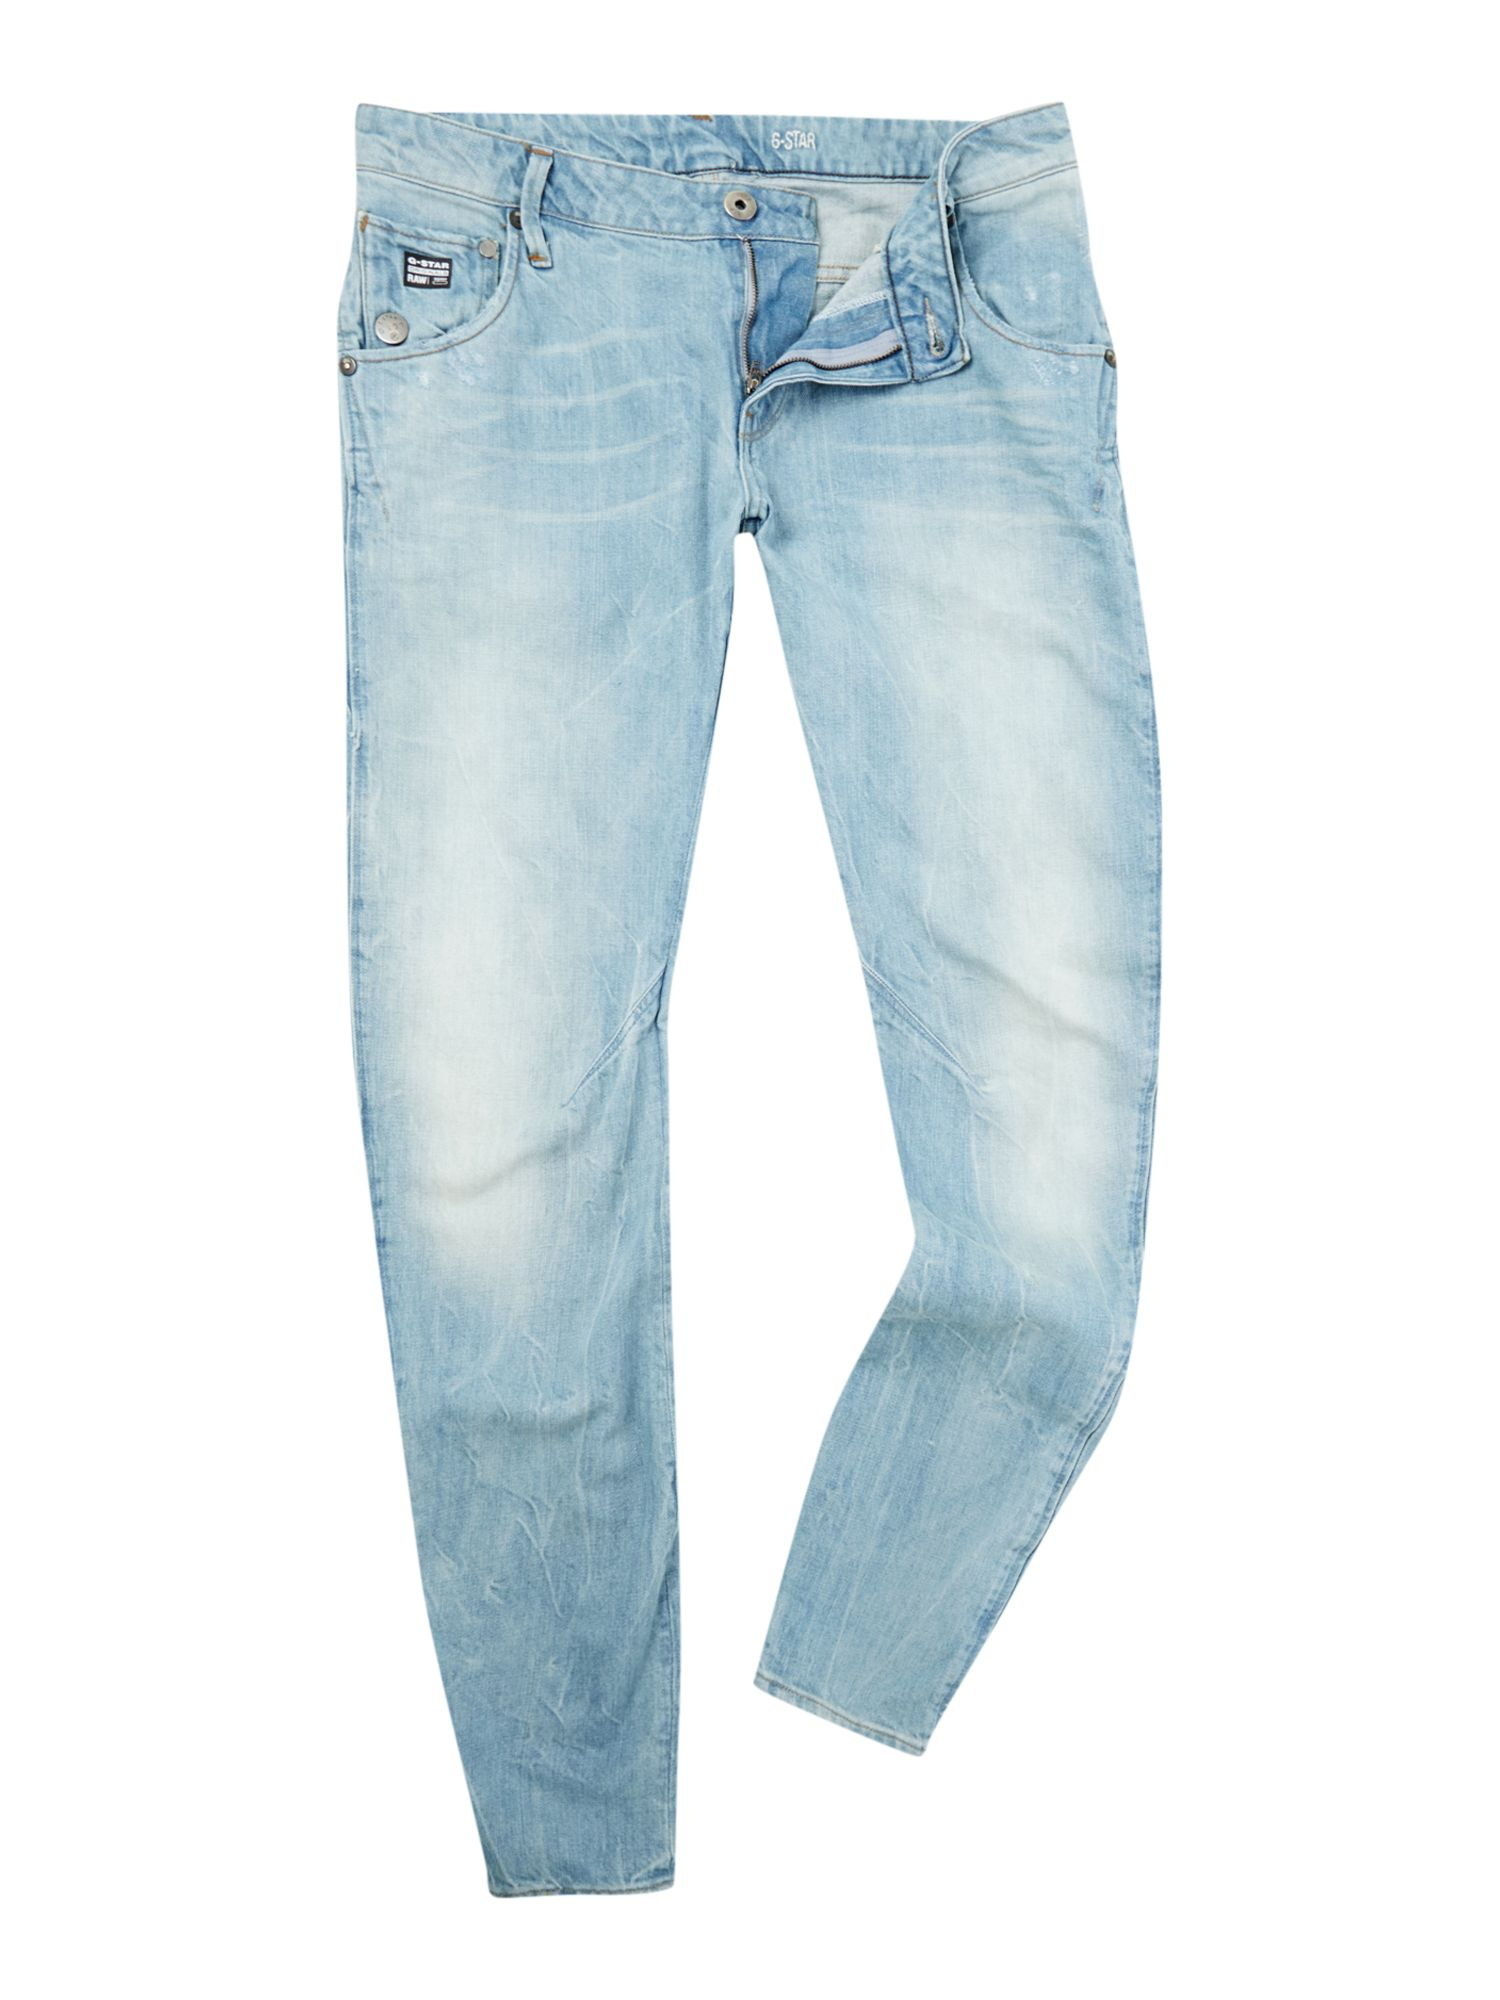 Arc slim fit light stonewash wash jeans